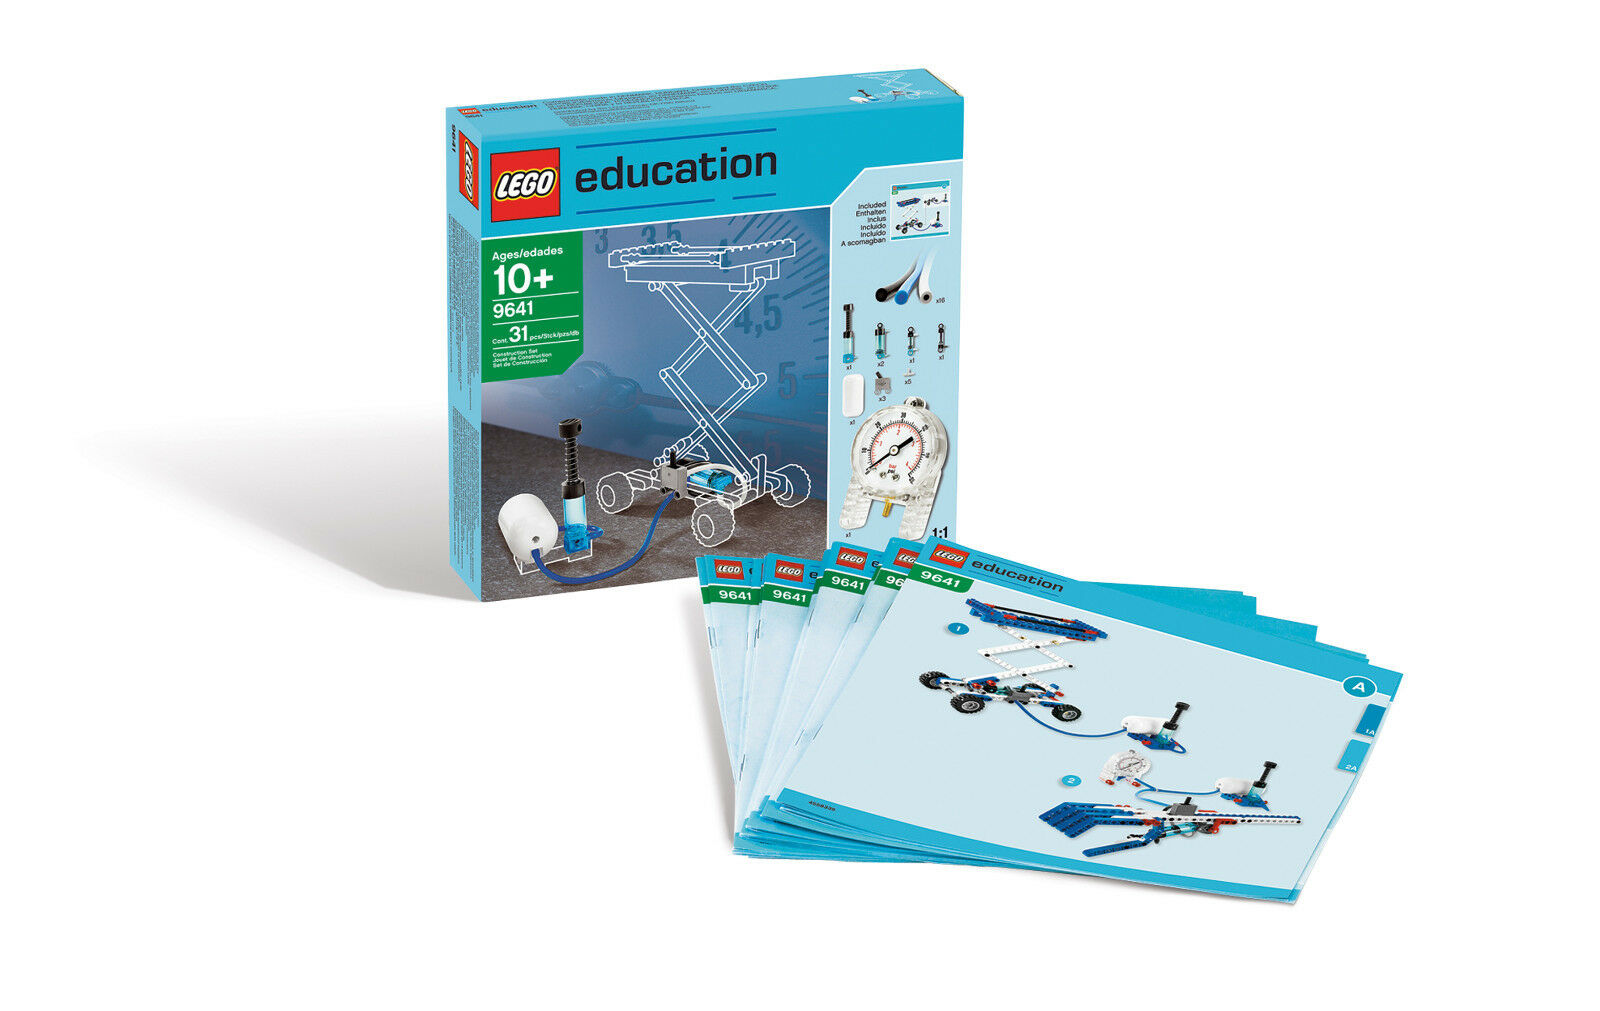 Lego 9641 Education Pneumatique Additionnel à 9686 Neuf Pression D'Air École